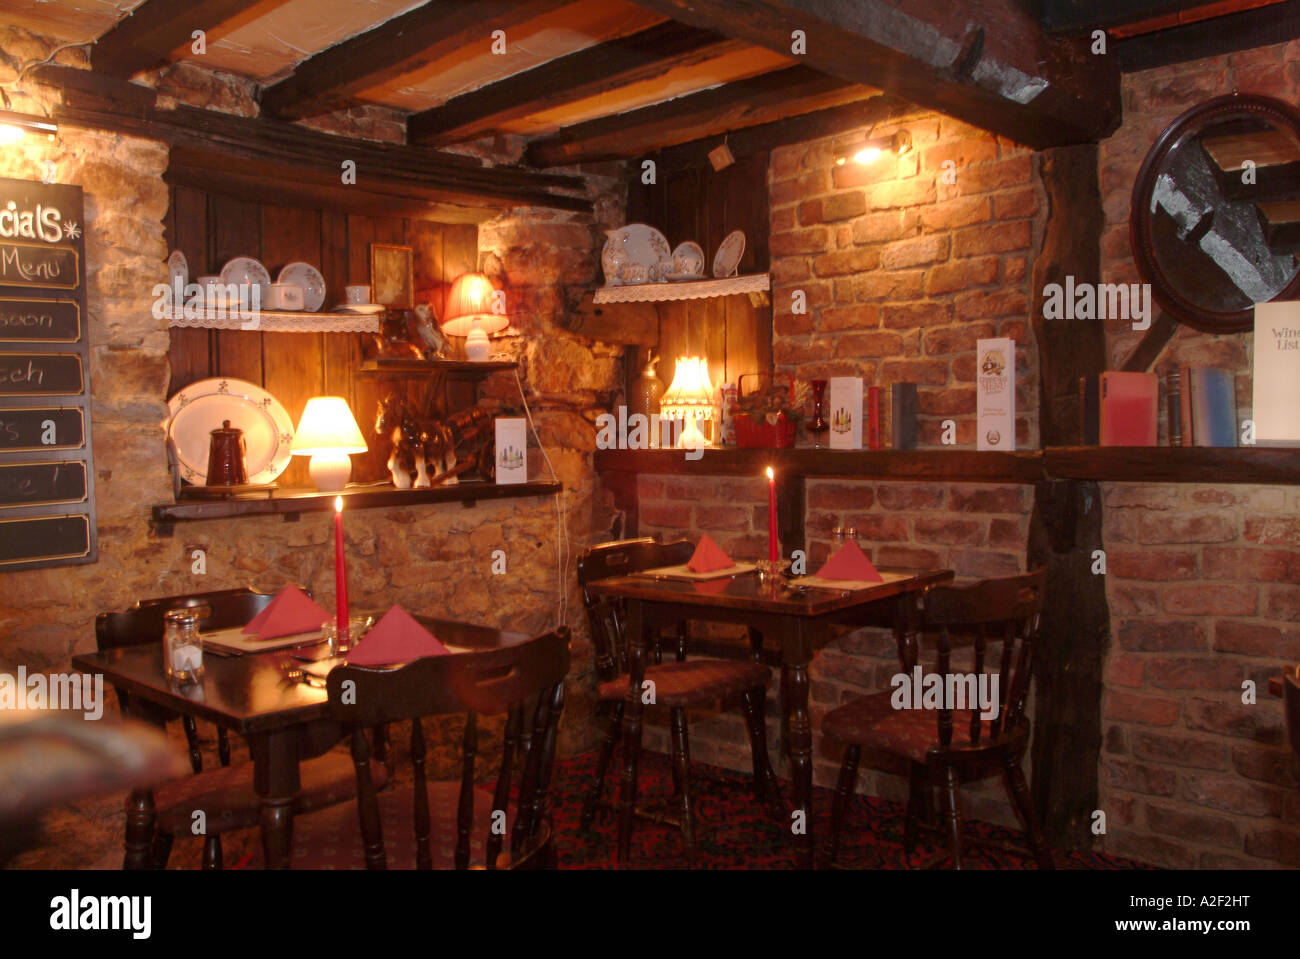 Candlelit Romantic Dining Room In Pub In England, Uk Stock Photo ...